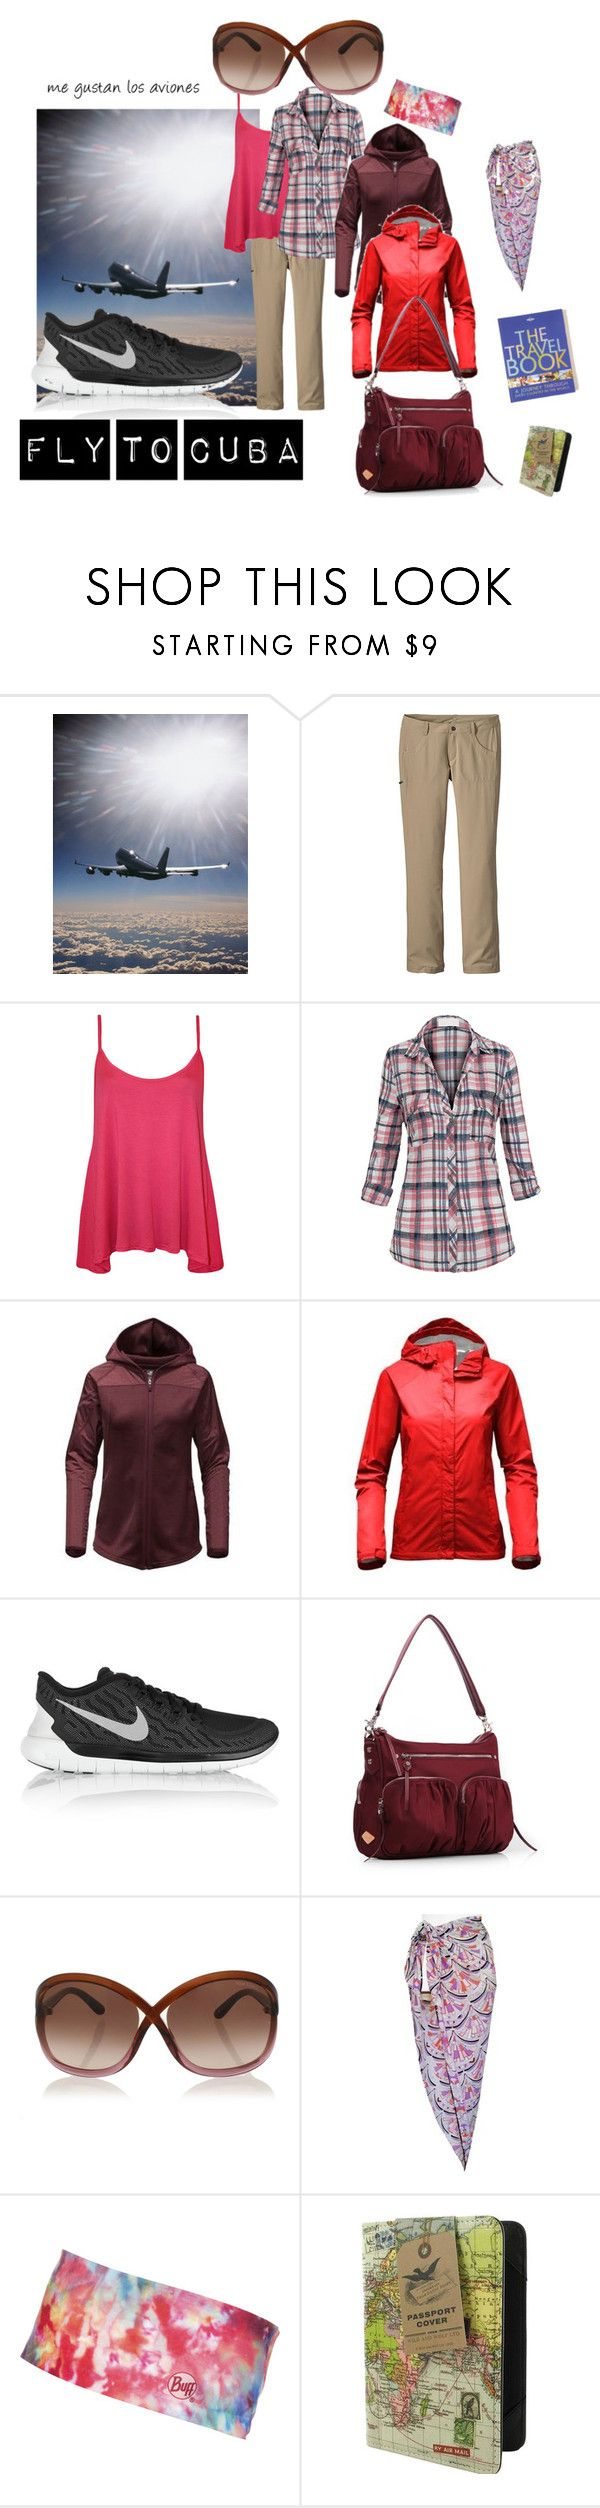 """""""Fly to Cuba"""" by majannsche ❤ liked on Polyvore featuring Patagonia, WearAll, Hot from Hollywood, The North Face, NIKE, Tom Ford, Emilio Pucci, BUFF, Lonely Planet and travel"""